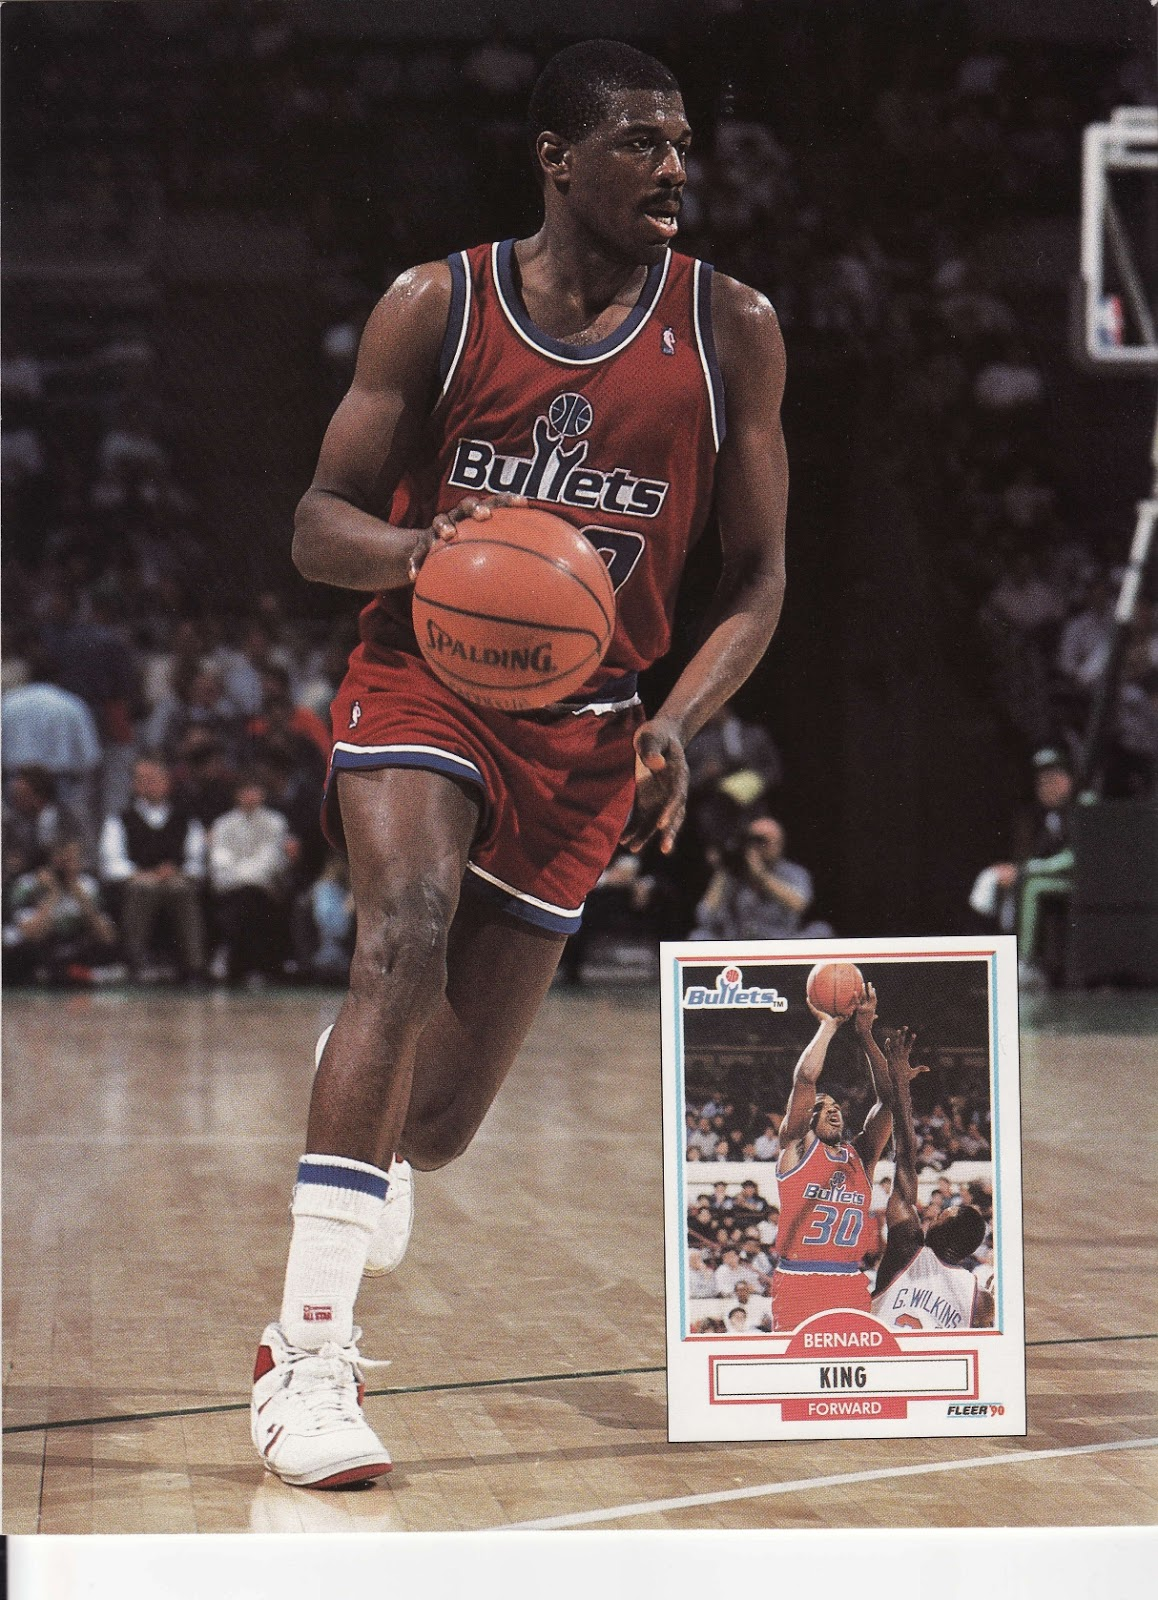 Bernard King from Beckett Basketball Monthly